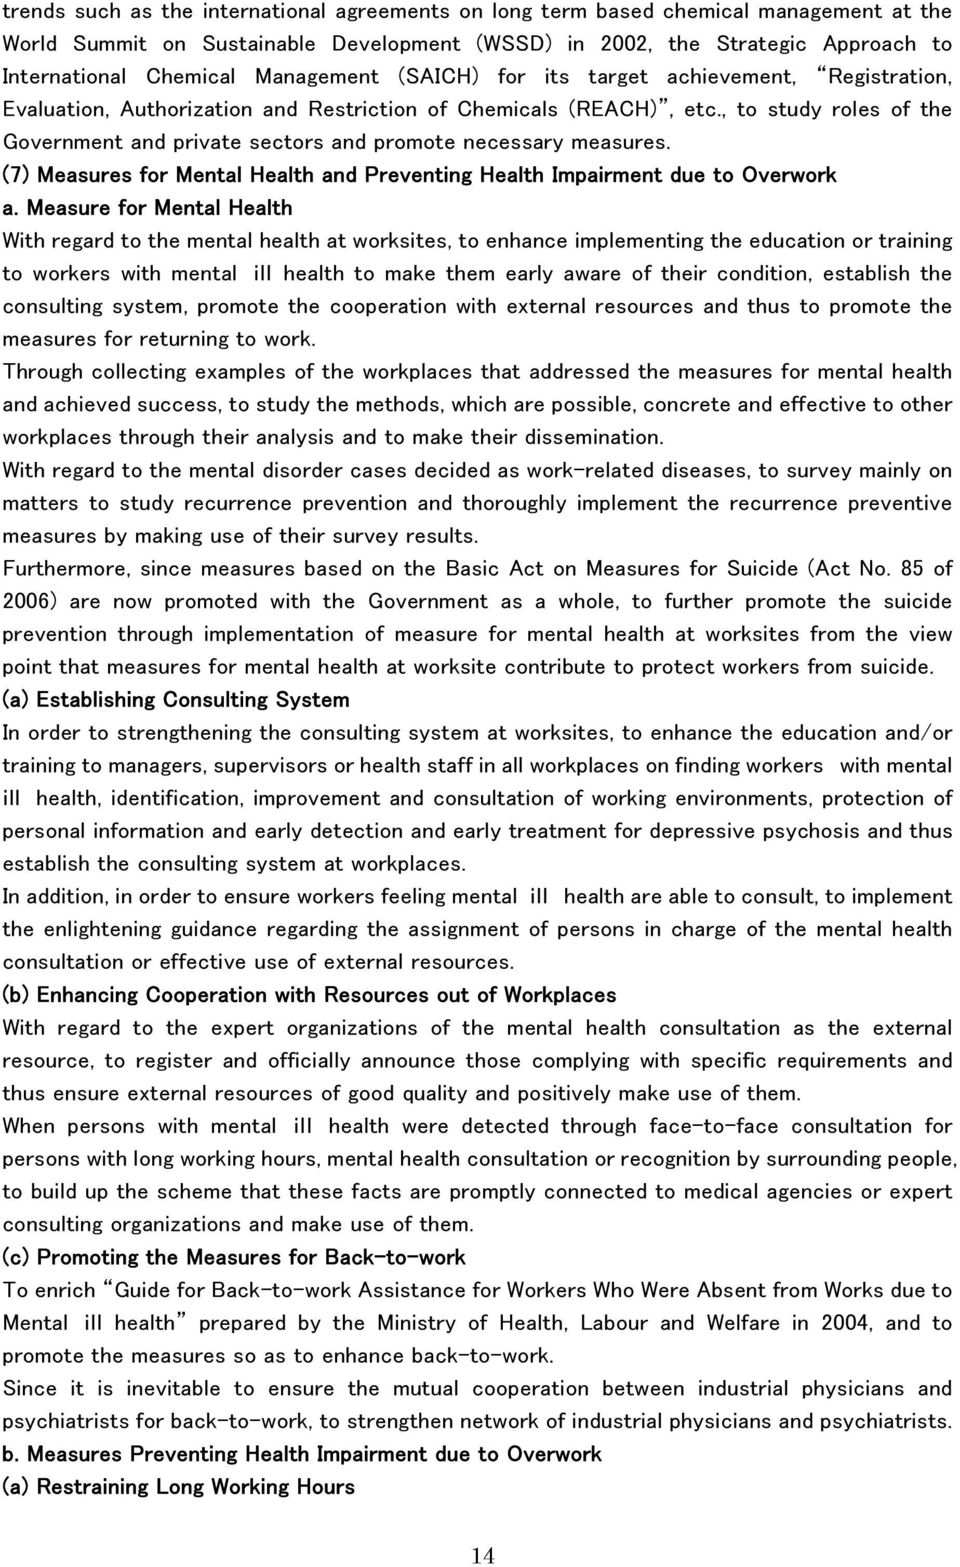 , to study roles of the Government and private sectors and promote necessary measures. (7) Measures for Mental Health and Preventing Health Impairment due to Overwork a.